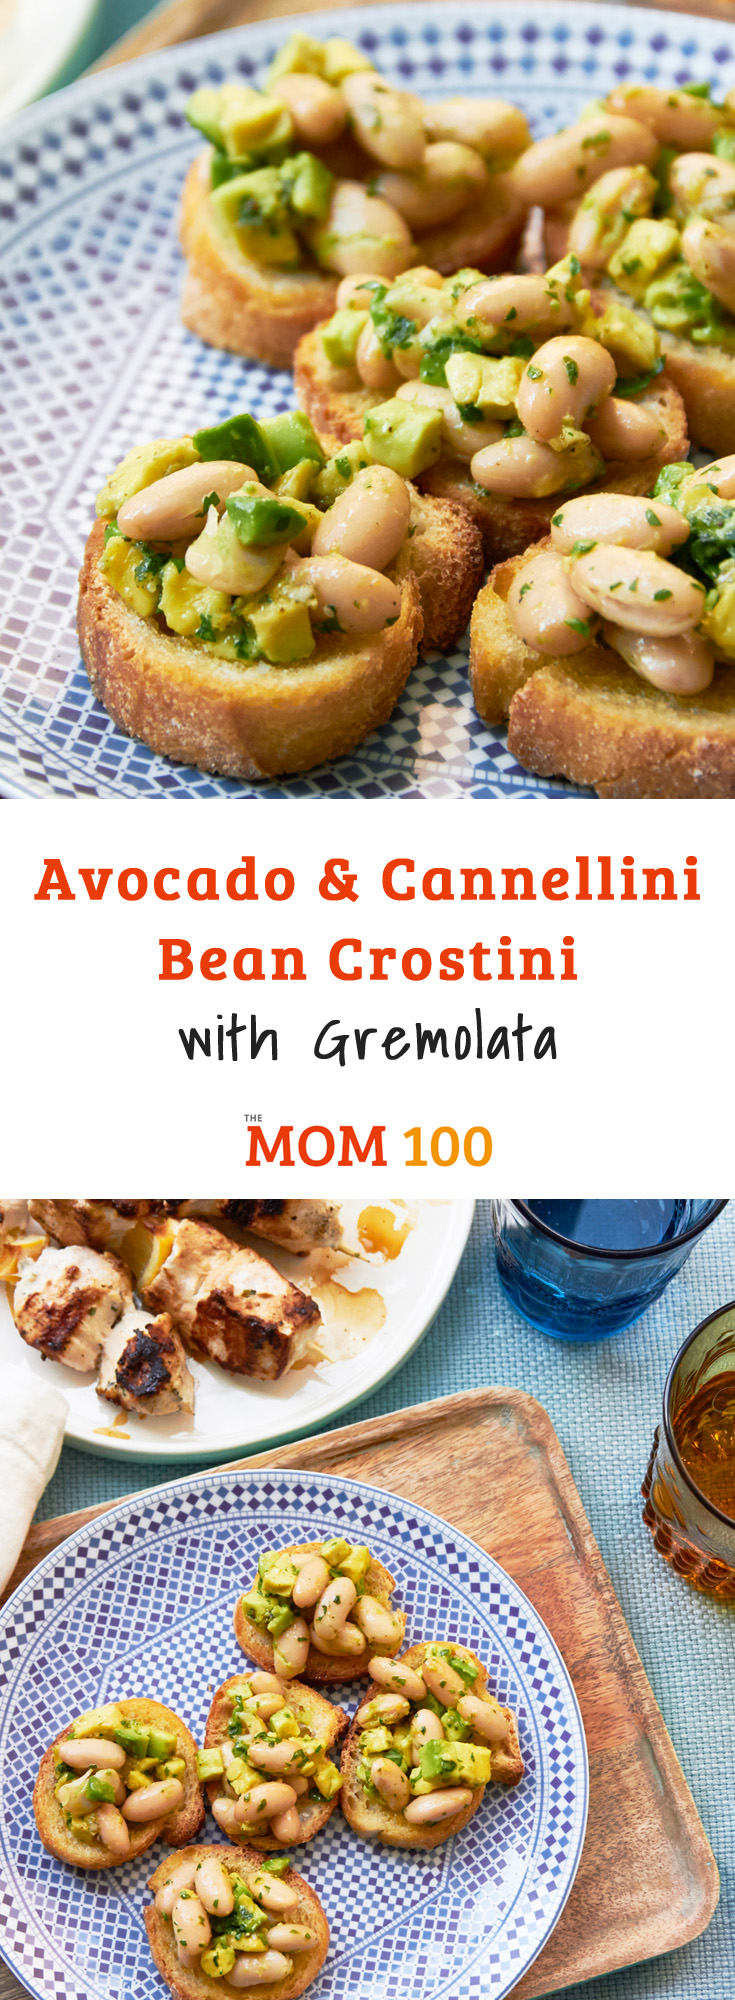 Avocado and Cannellini Bean Crostini are a brilliant way to transform a ripe avocado and a can of beans into an elegant little appetizer.